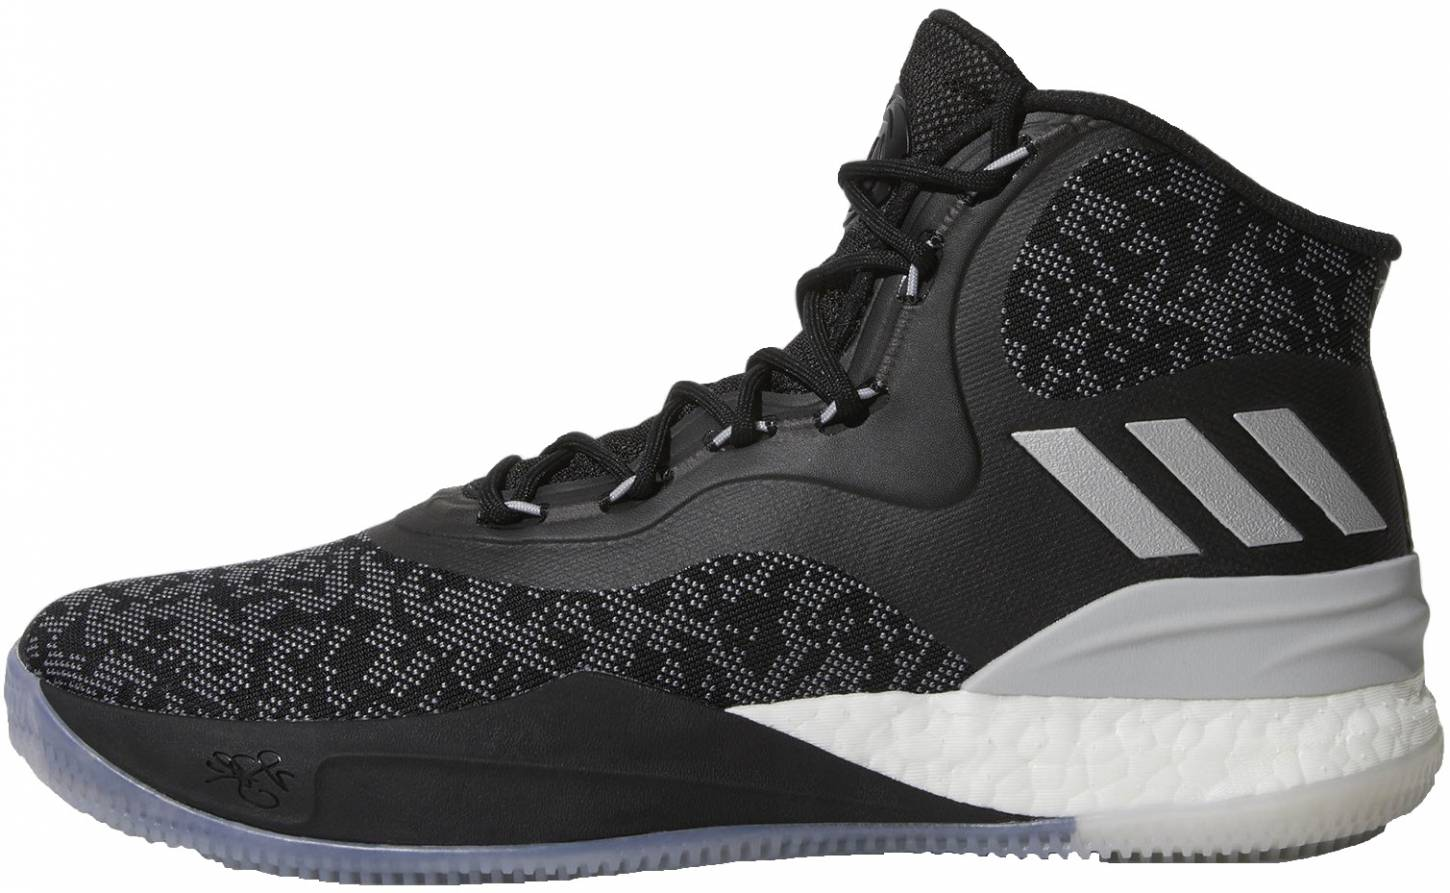 Only £50 + Review of Adidas D Rose 8